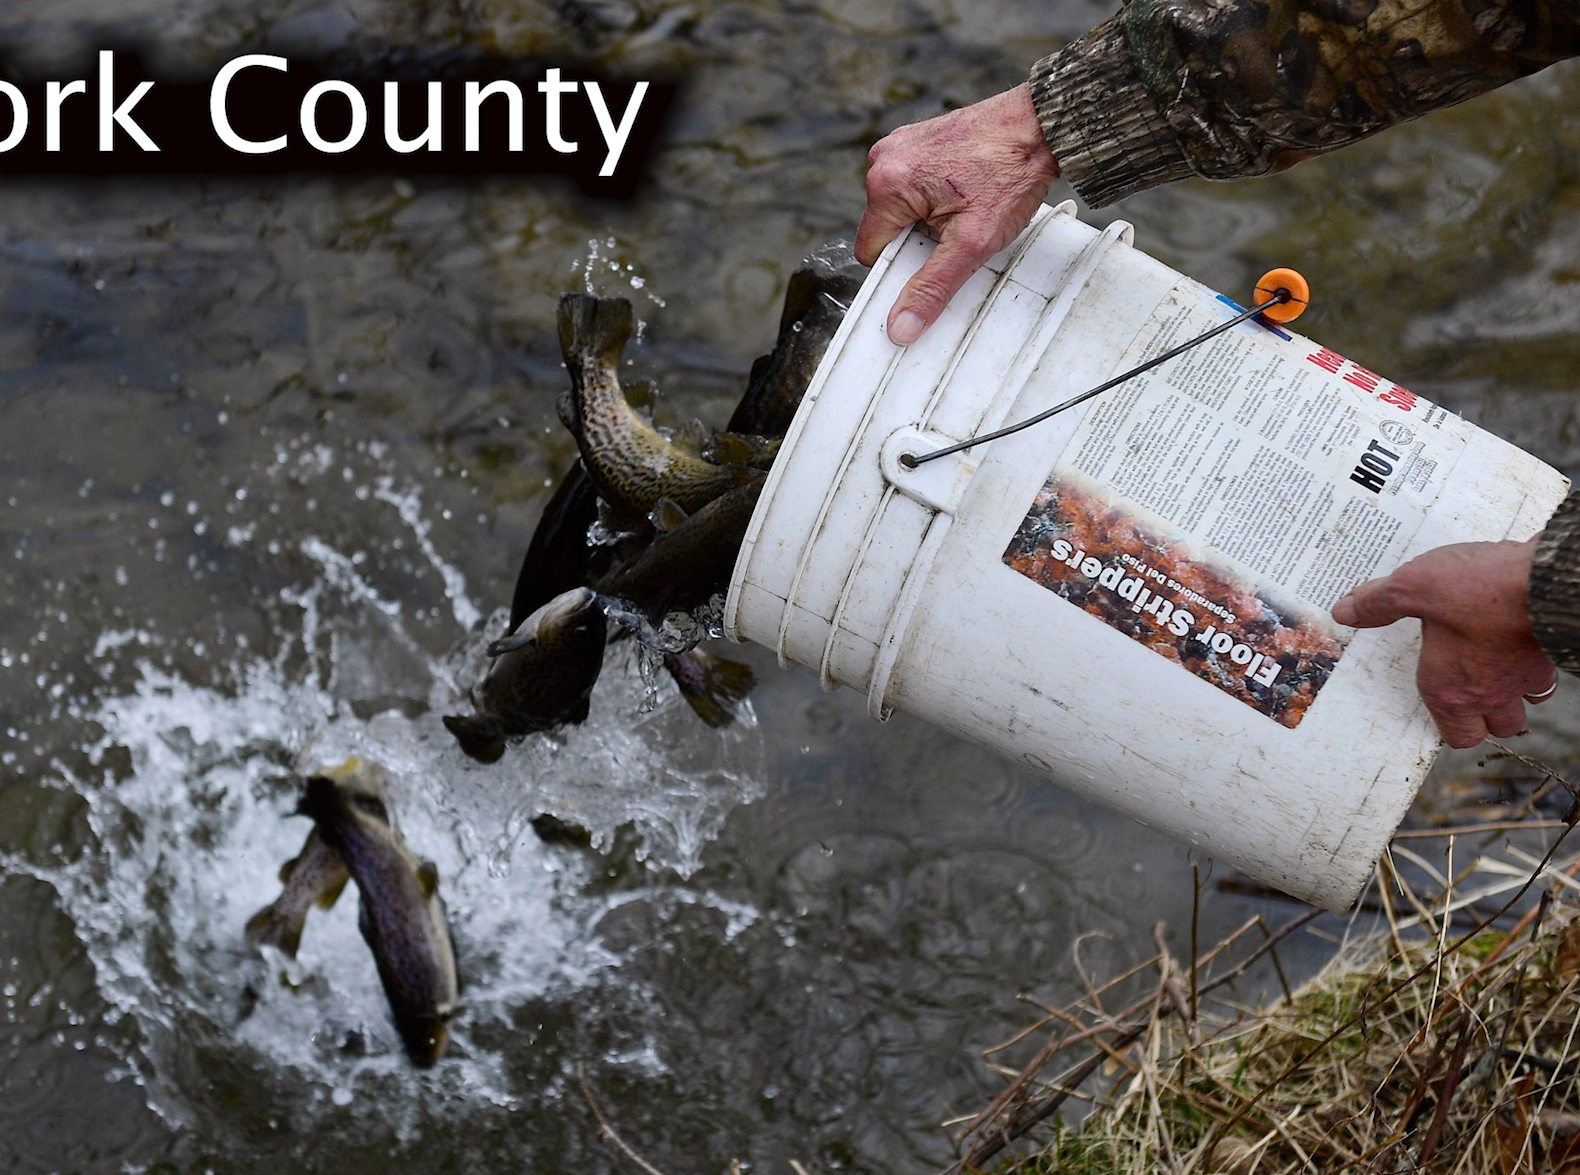 York County trout stocking schedule